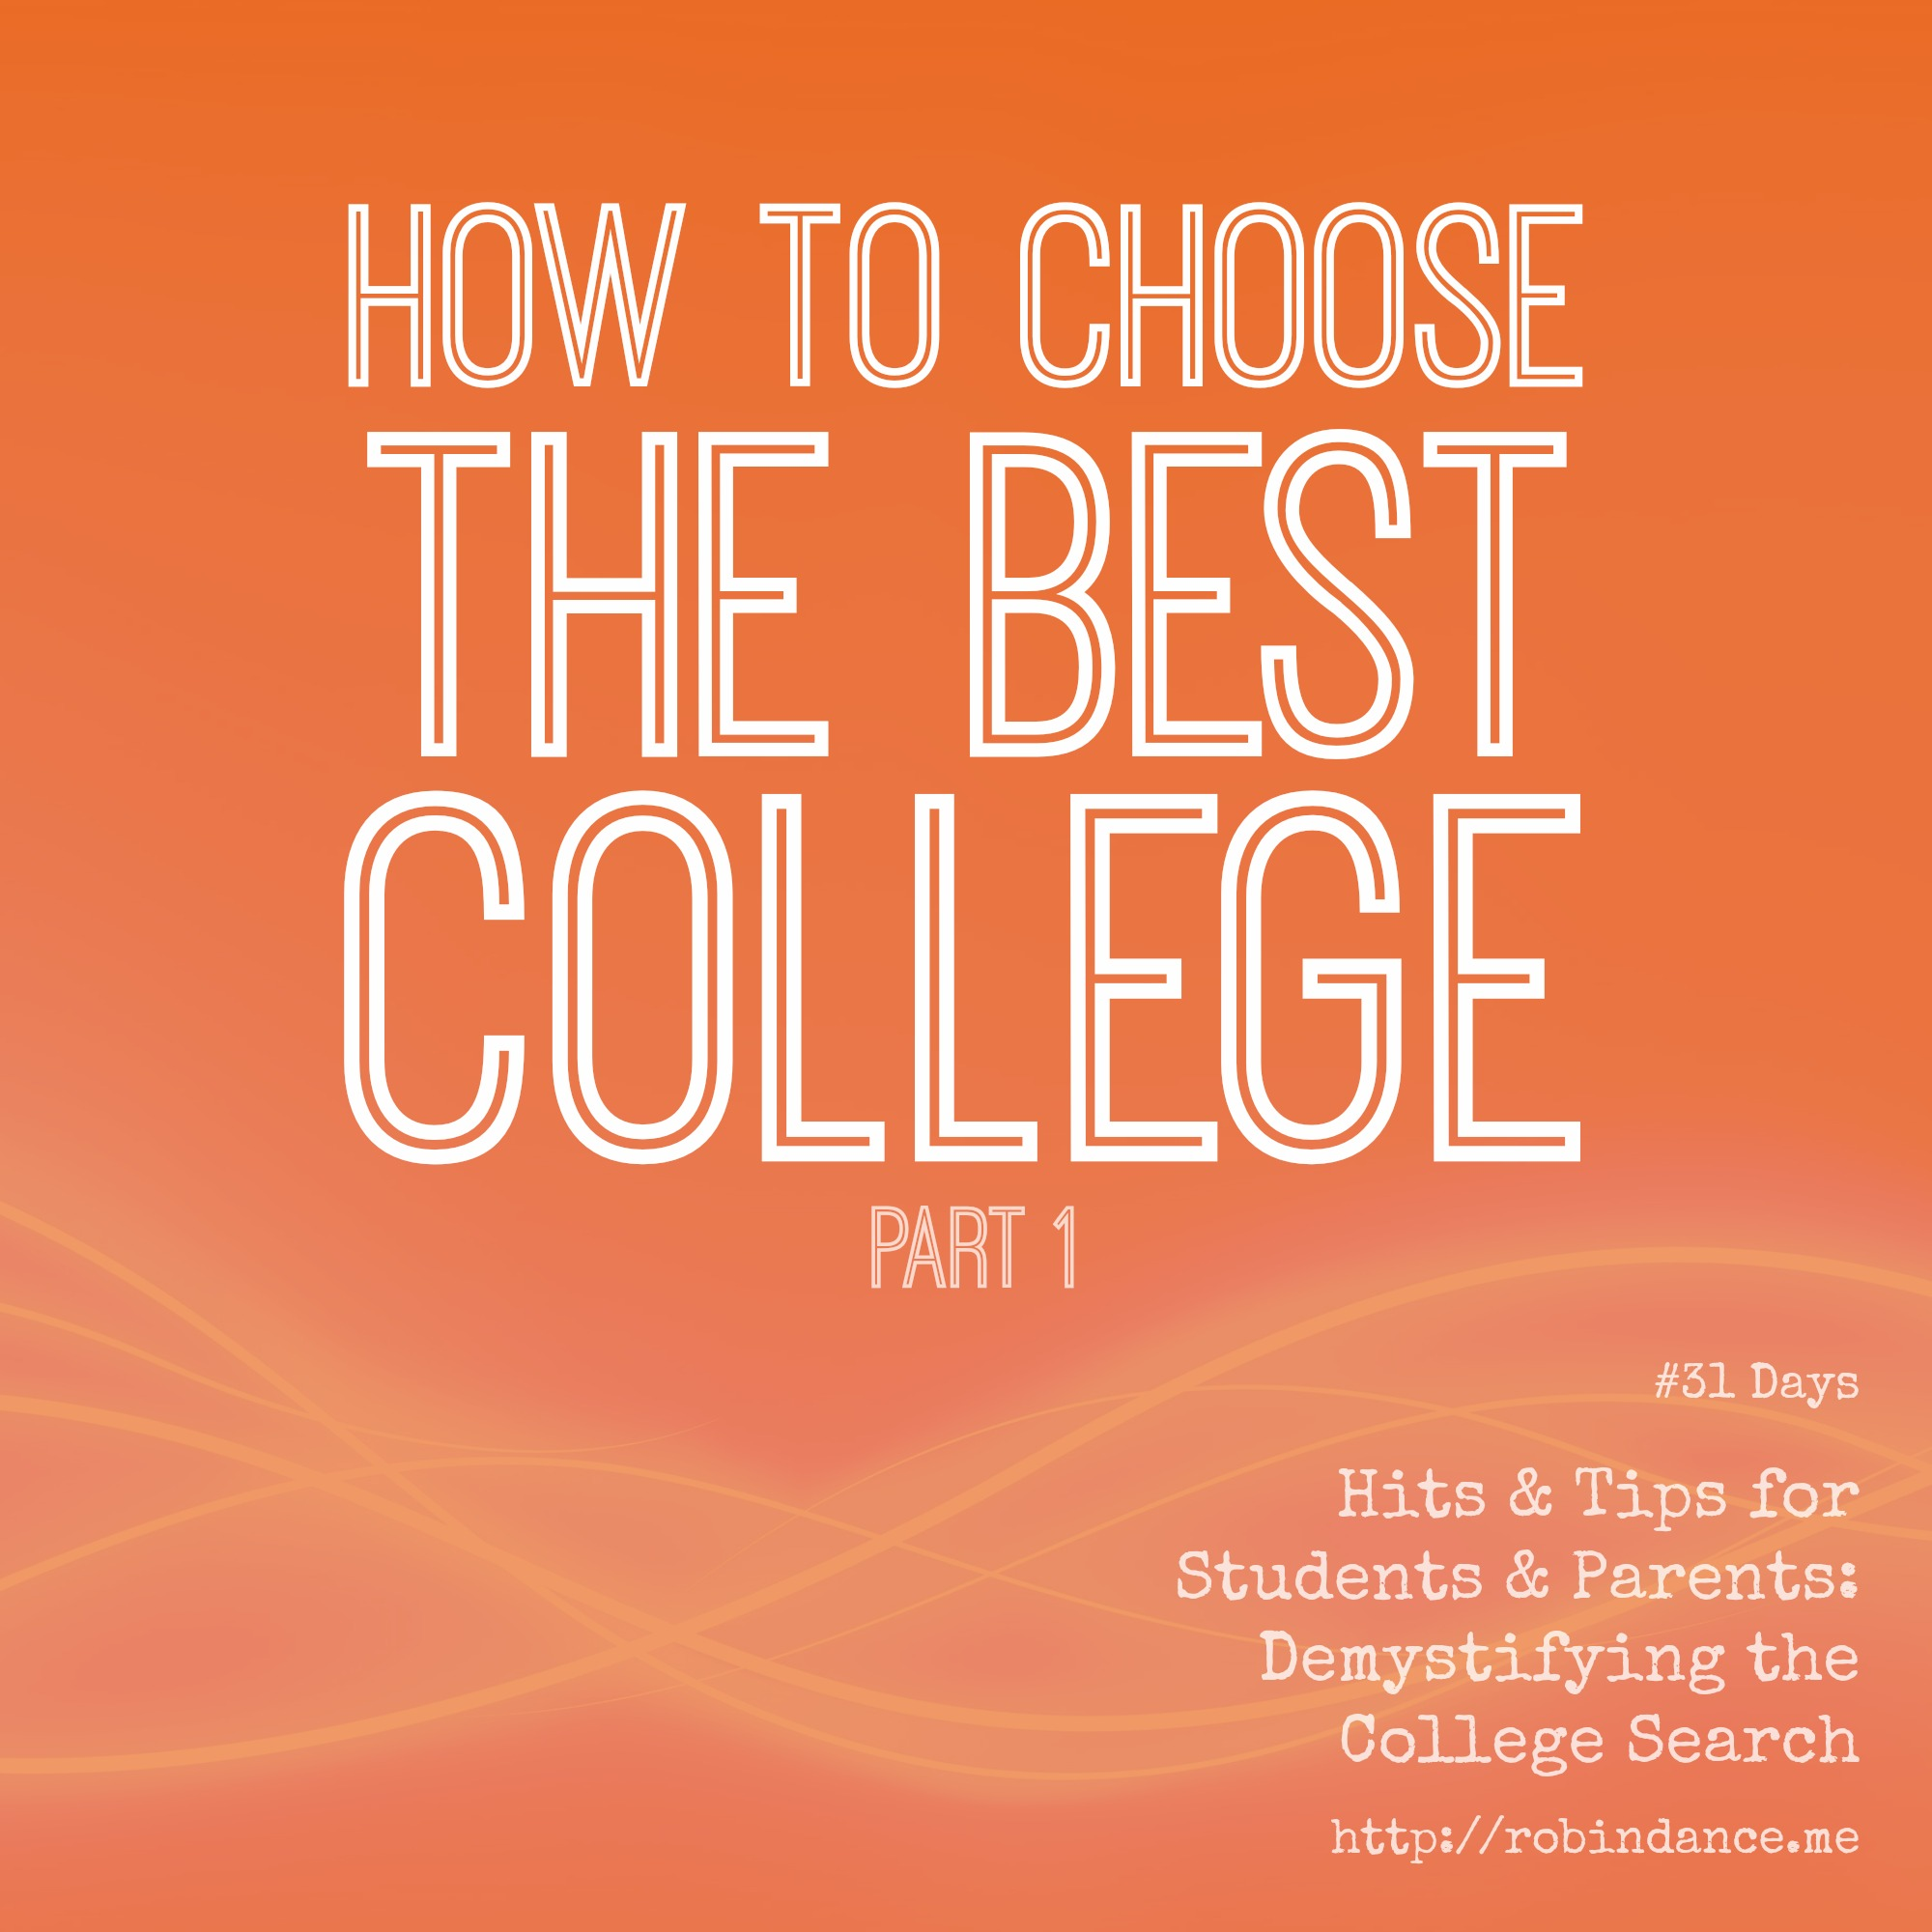 days hints tips for college bound students archives robin 2 870 four year colleges in the us and an additional 1 700 two year institutions is there such thing as the best college for a student